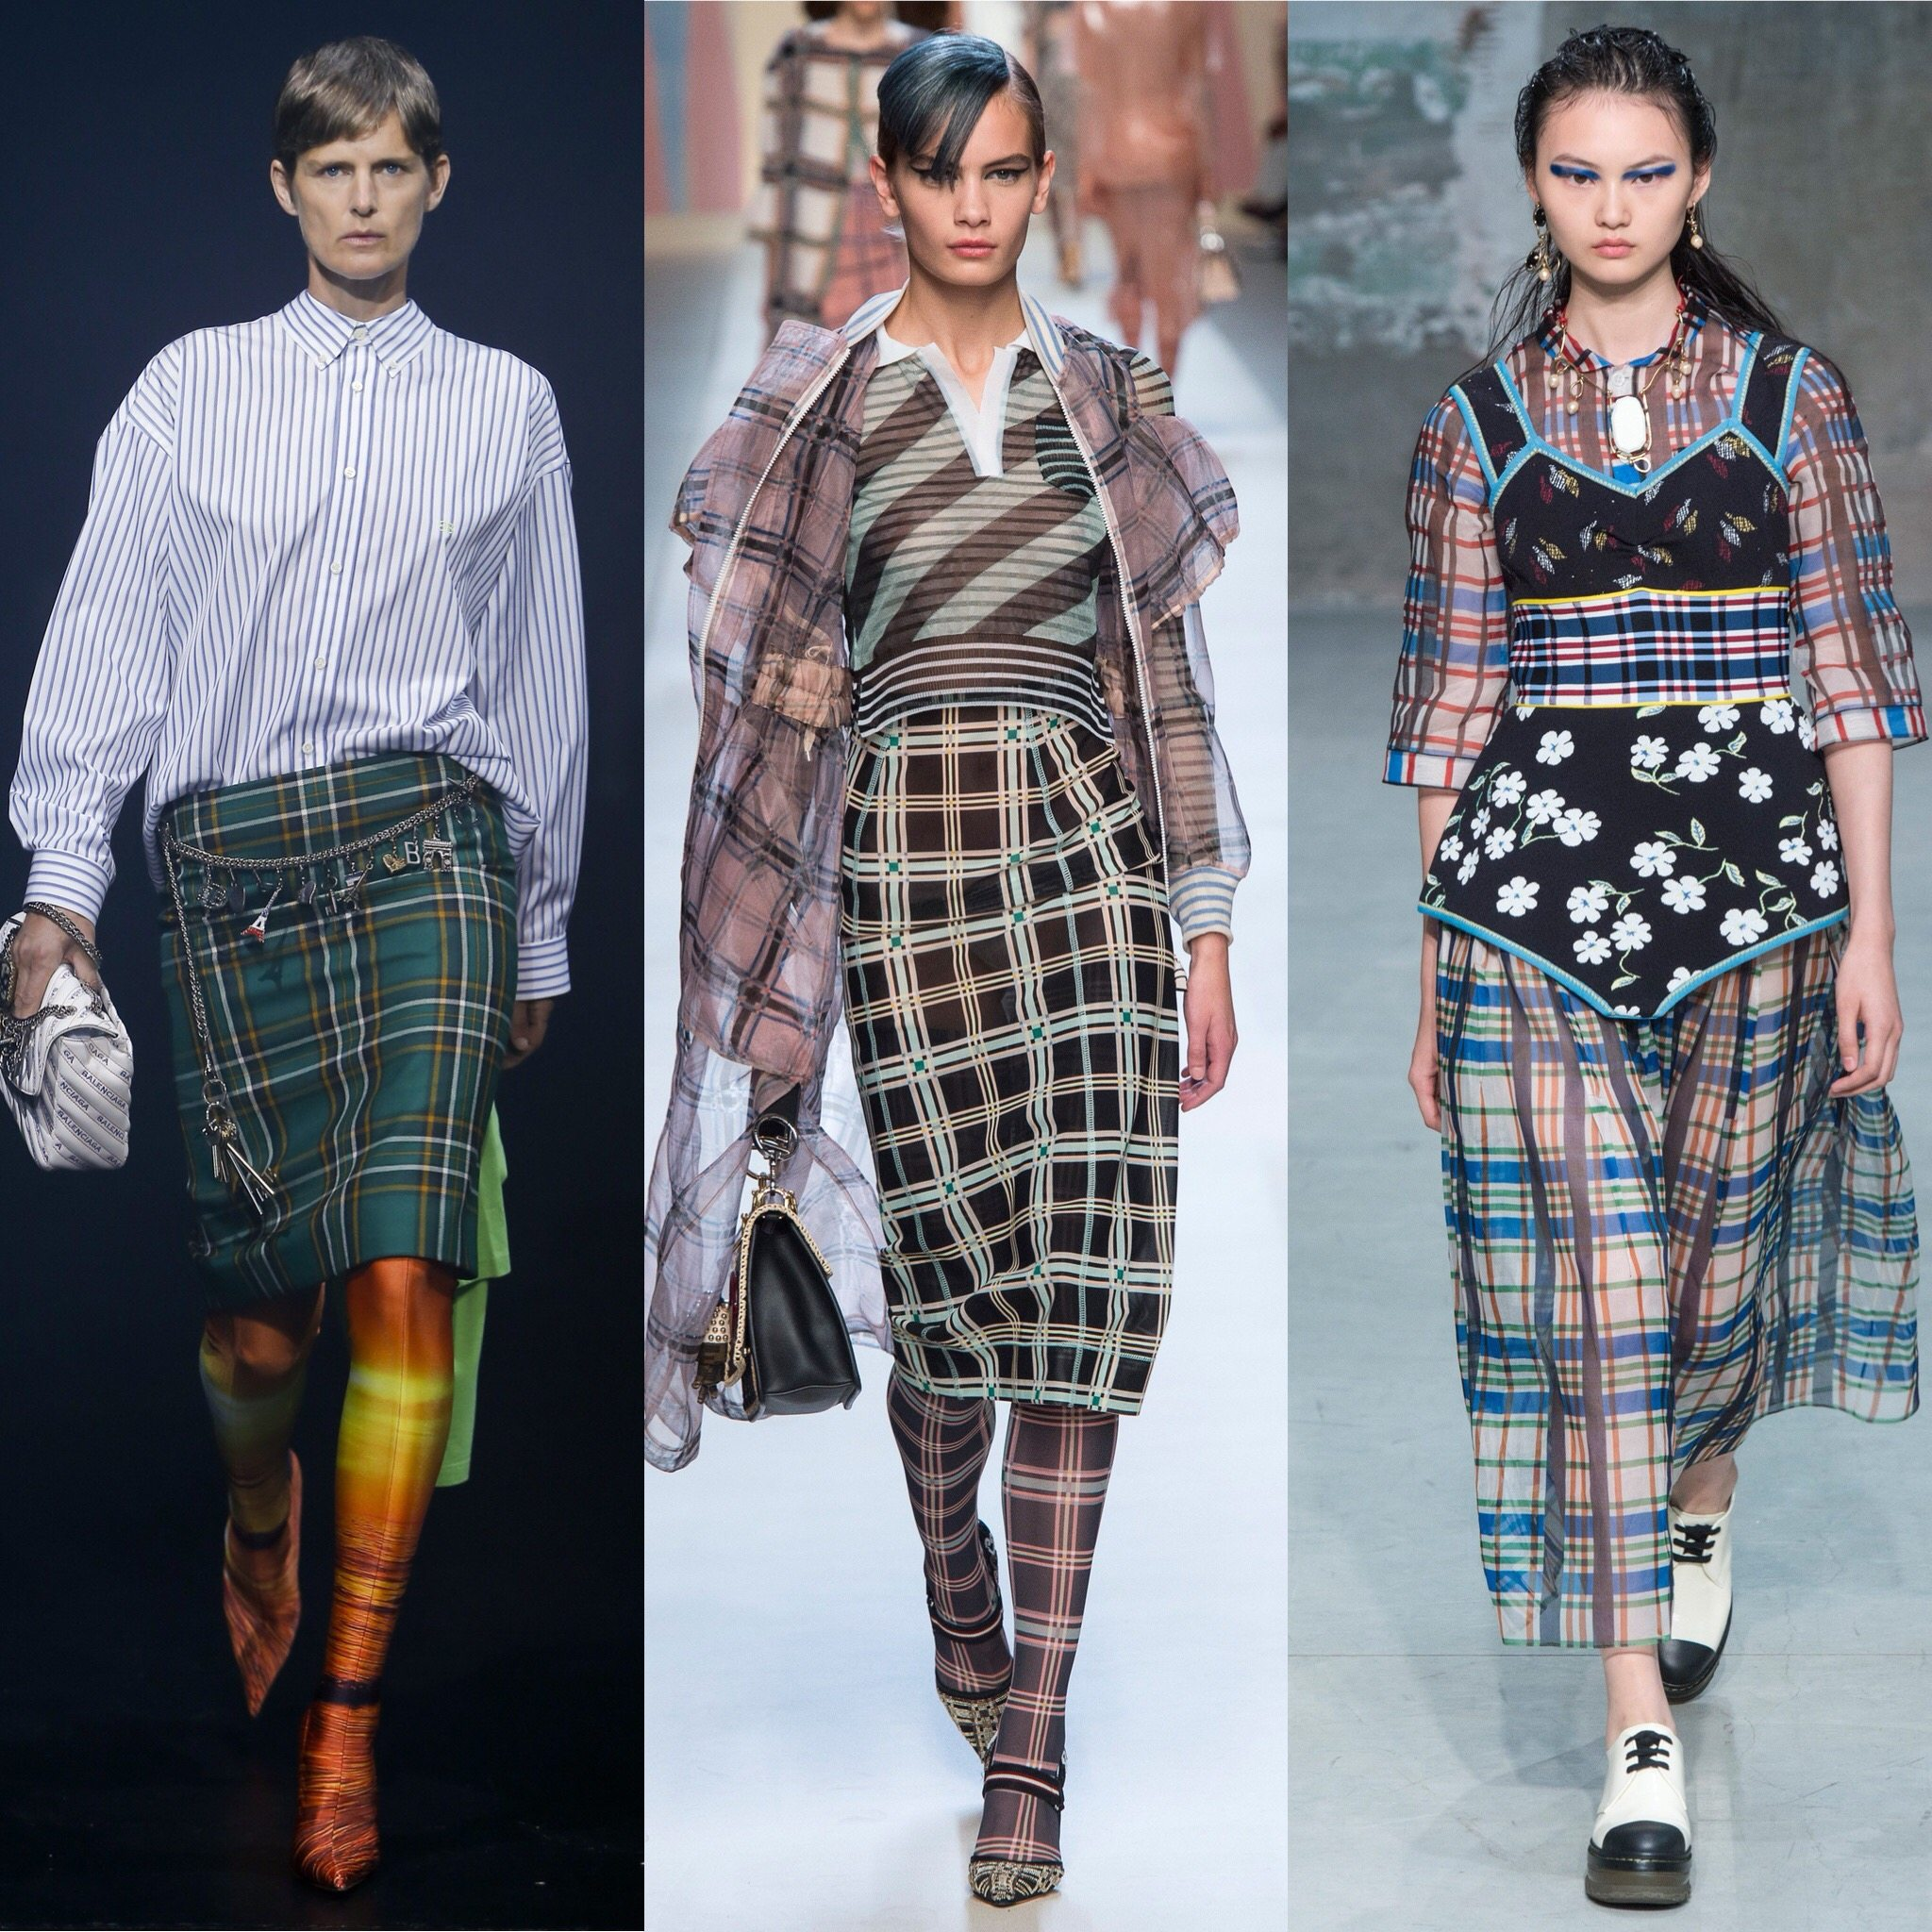 Spring 2018 Trends: Fashion Week coverage - Plaids: Balenciaga - Fendi - Marni. More spring runway trends on Houseofcomil.com. Pictures from Vogue - Spring Fashion 2018